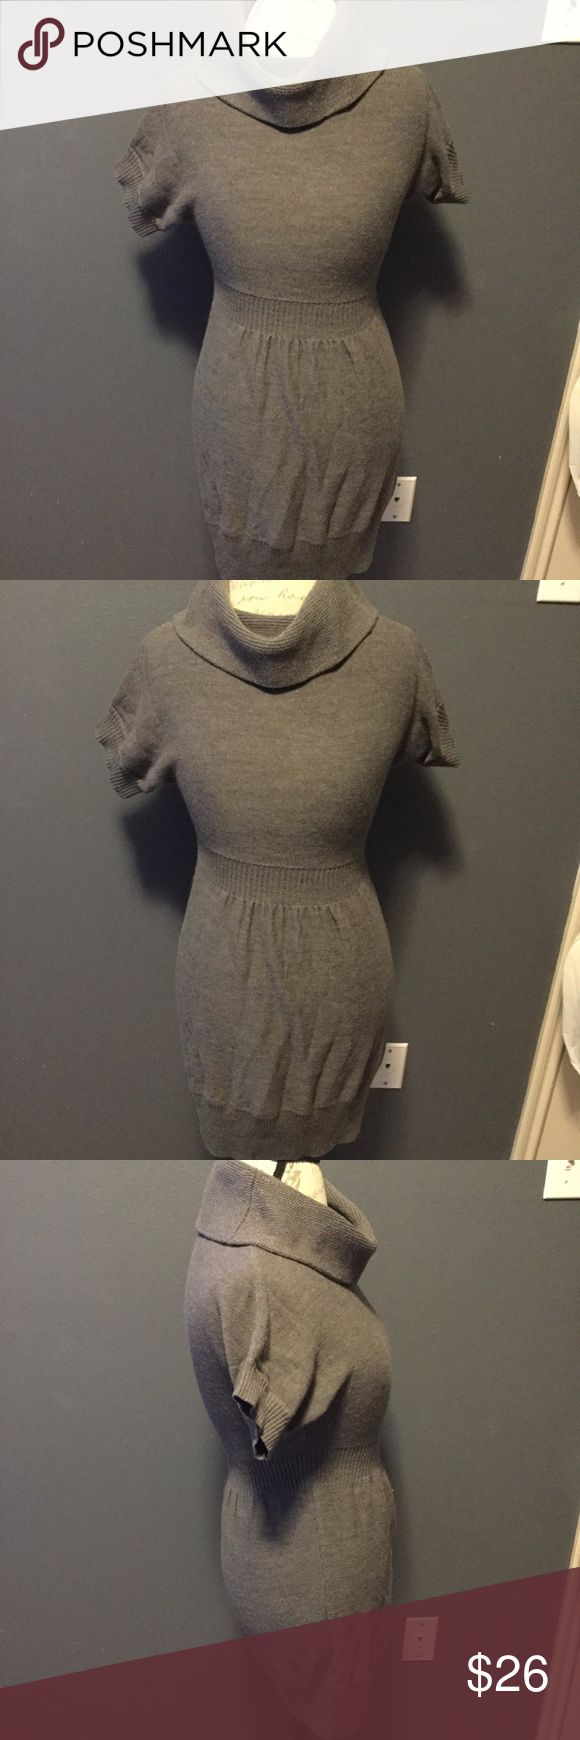 Women's Ann Taylor Petites Sweater Dress Size SP Style: Women's Sweater Dress  Size: SP Color: Gray Length: 32 Pit To Pit: 14 Country Of Manufacture: China Ann Taylor Dresses